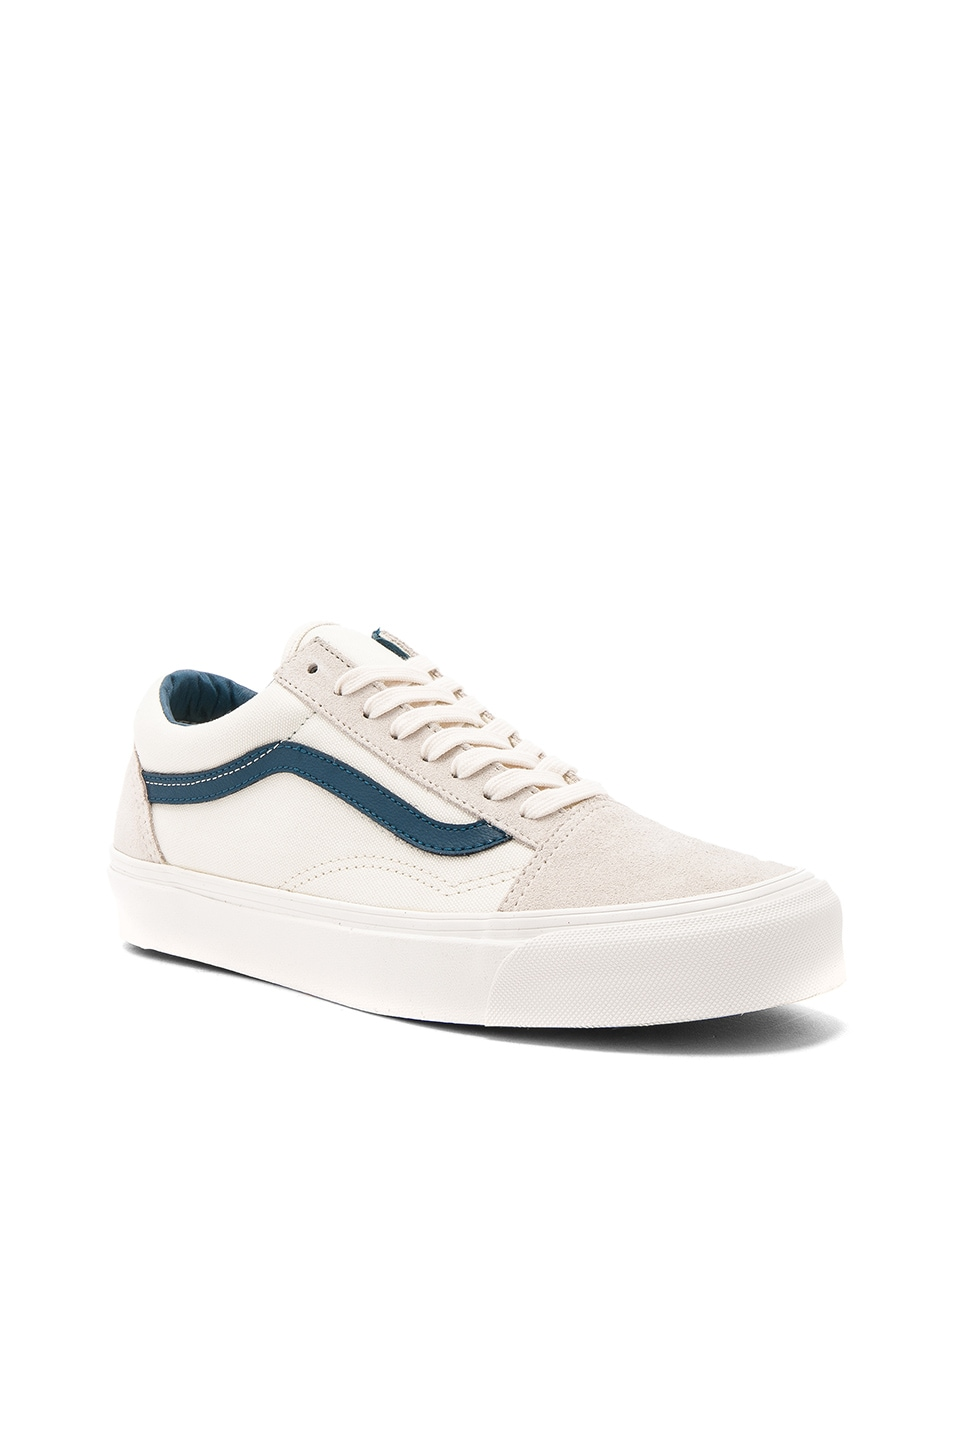 e109653237 Image 1 of Vans Vault Canvas OG Old Skool LX in Marshmallow